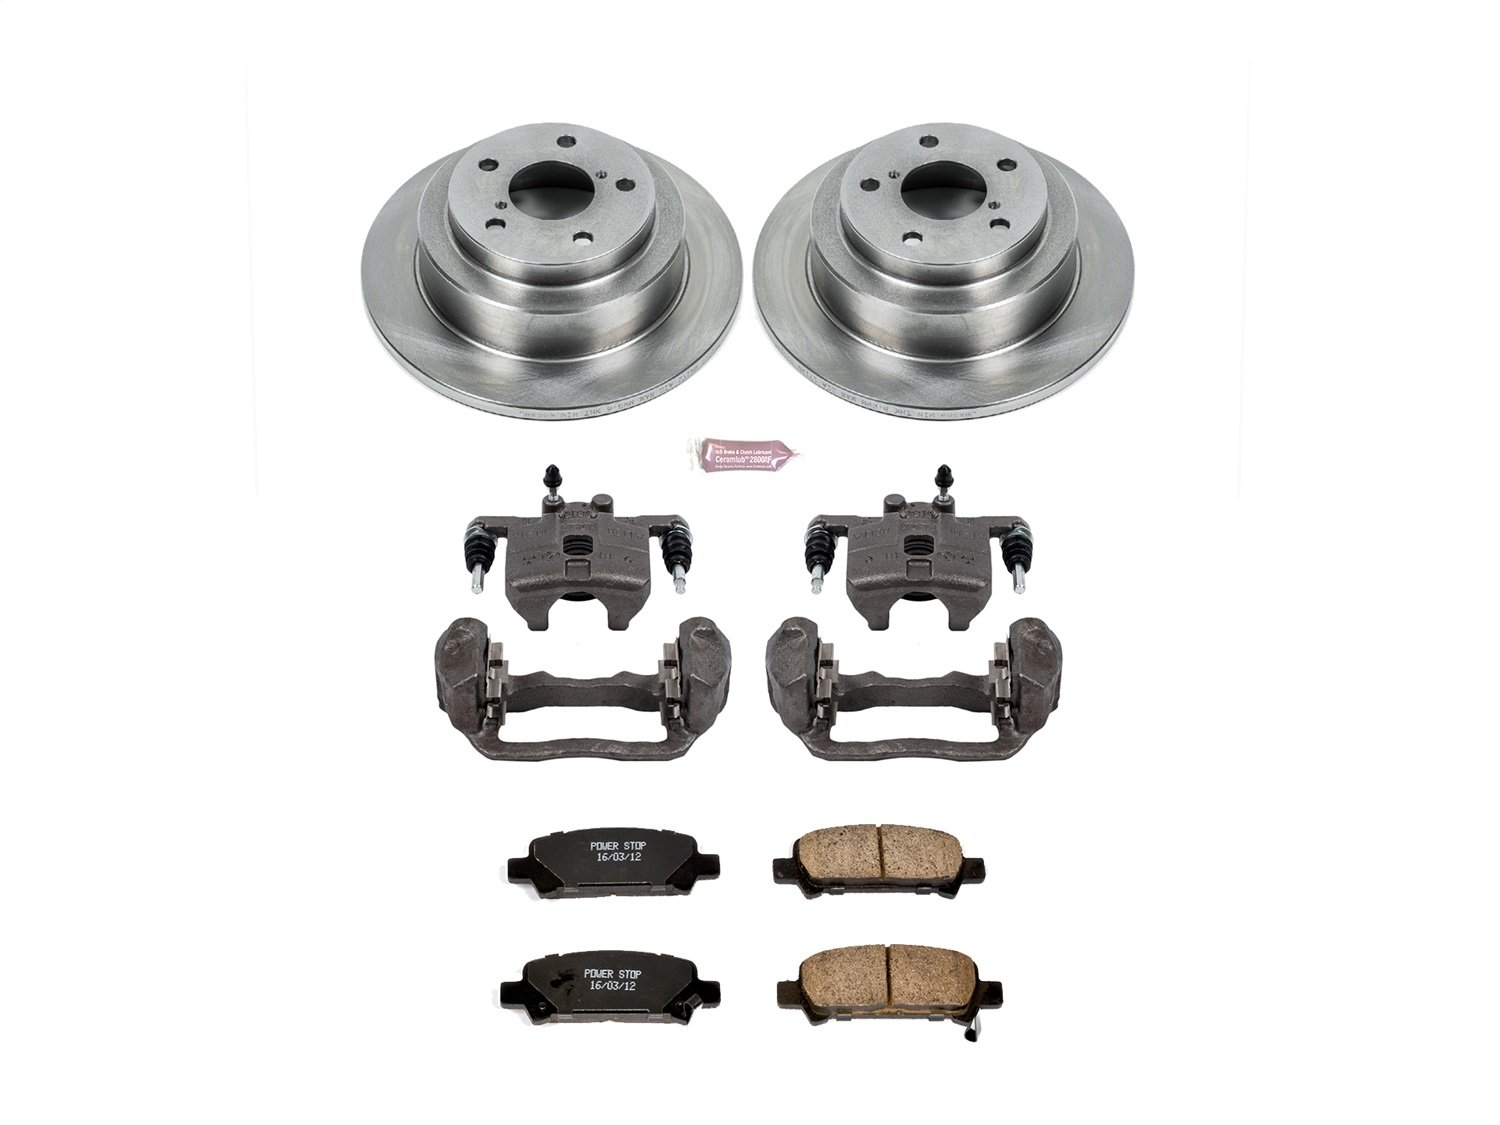 Power Stop KCOE449 Autospecialty 1-Click OE Replacement Brake Kit with Calipers